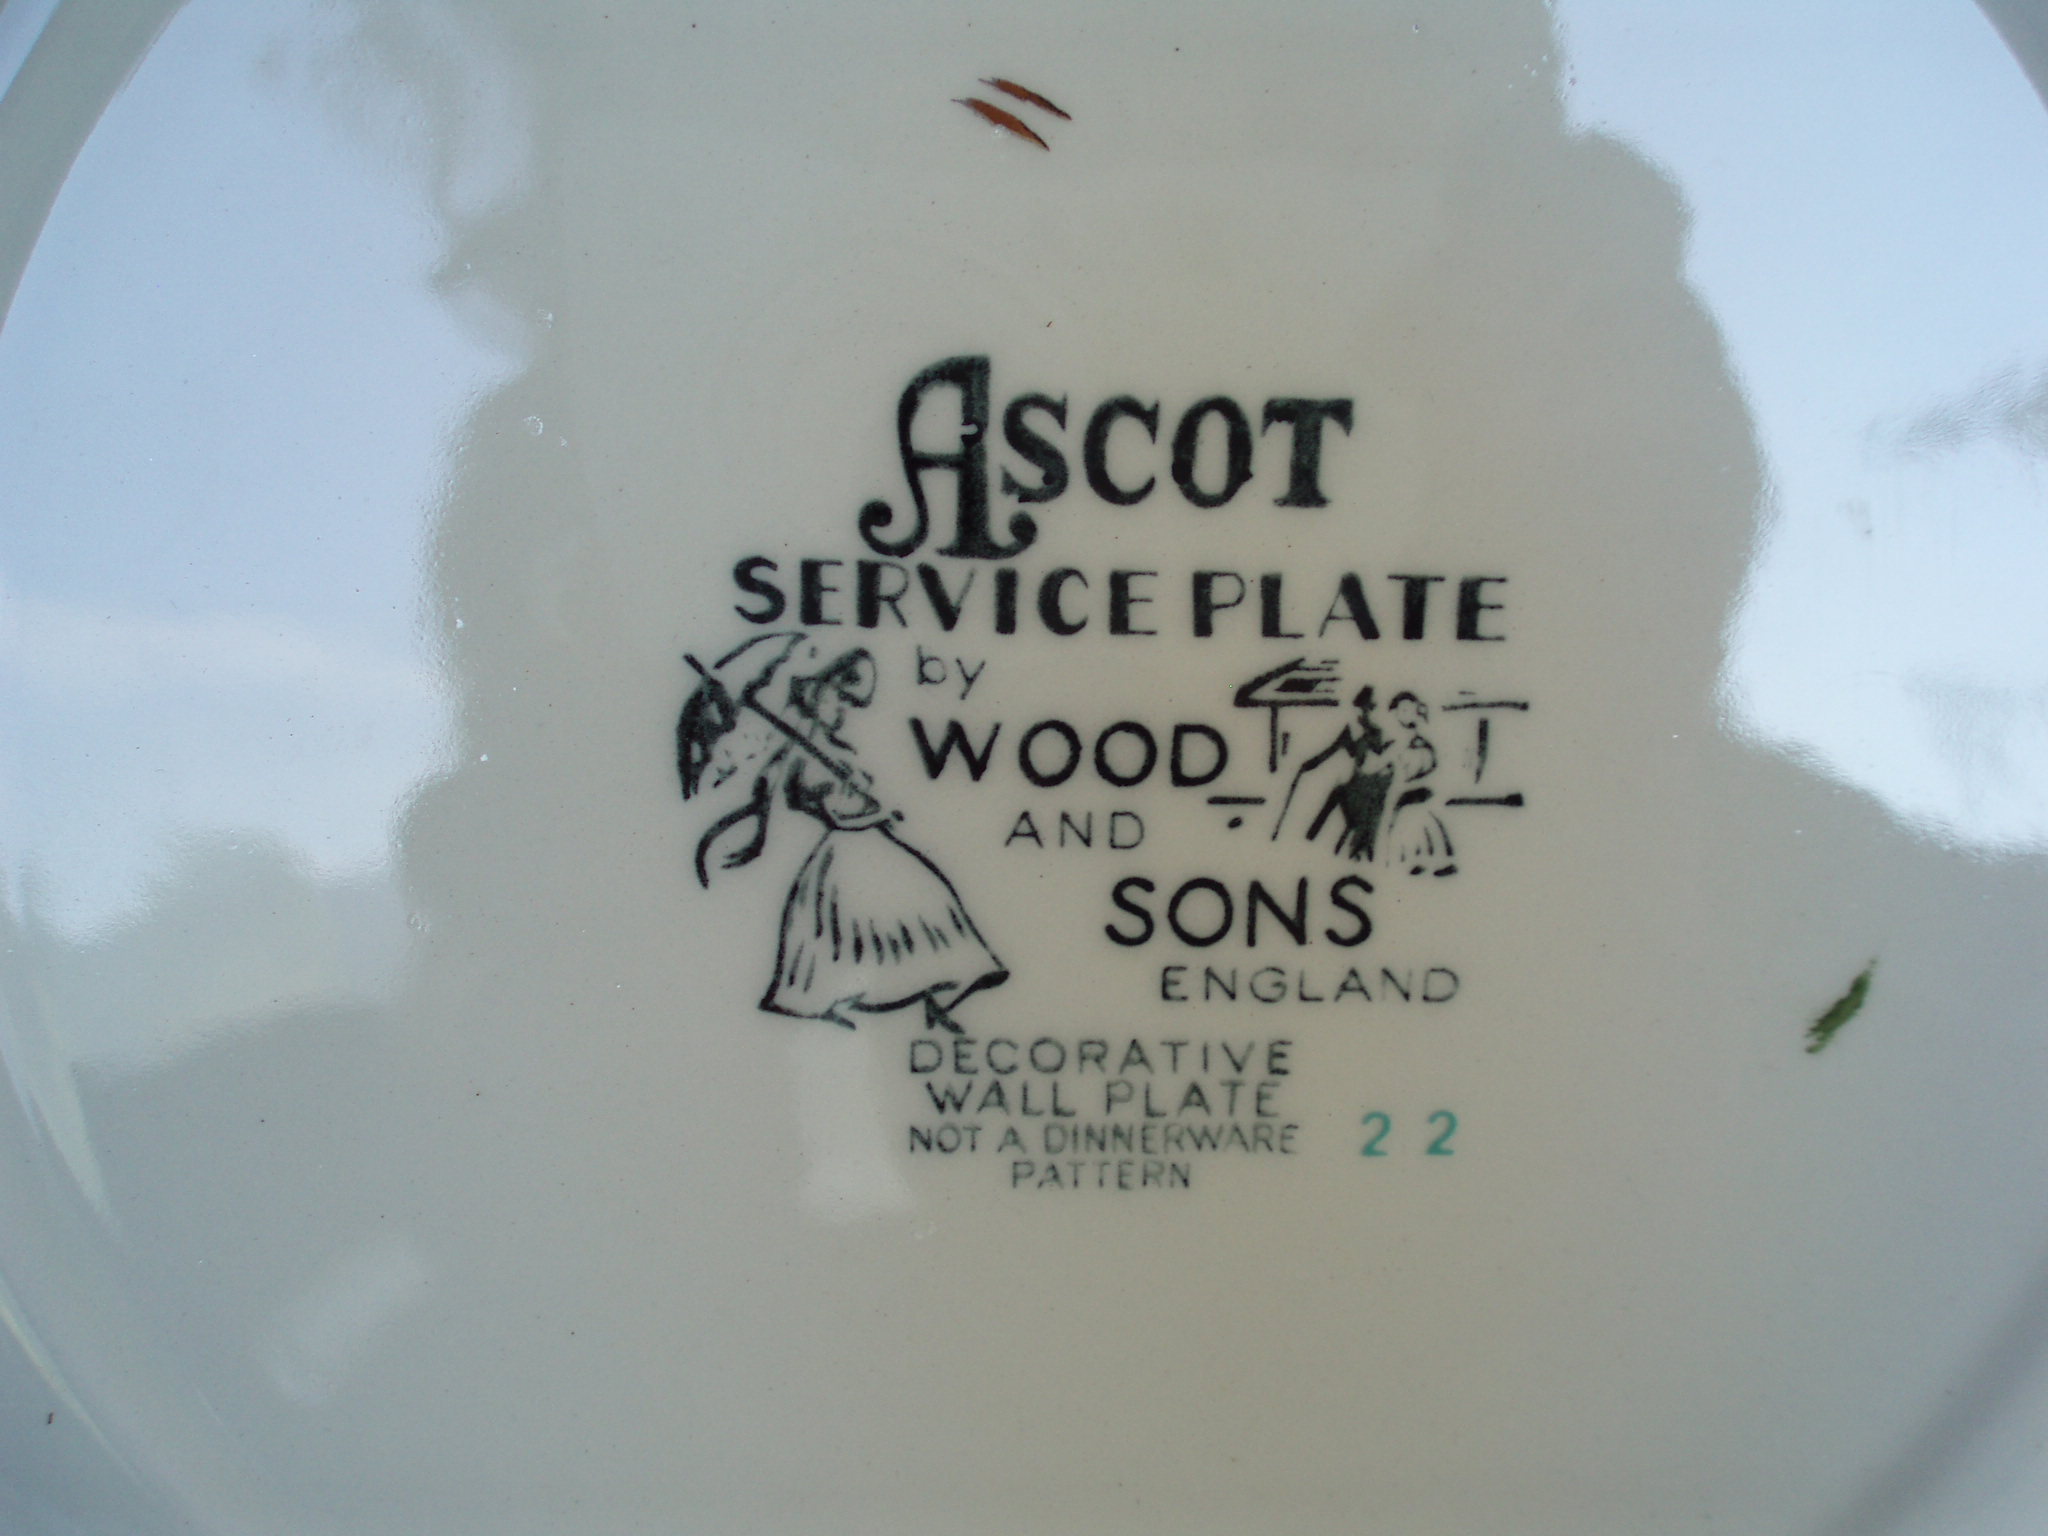 Wood and Sons